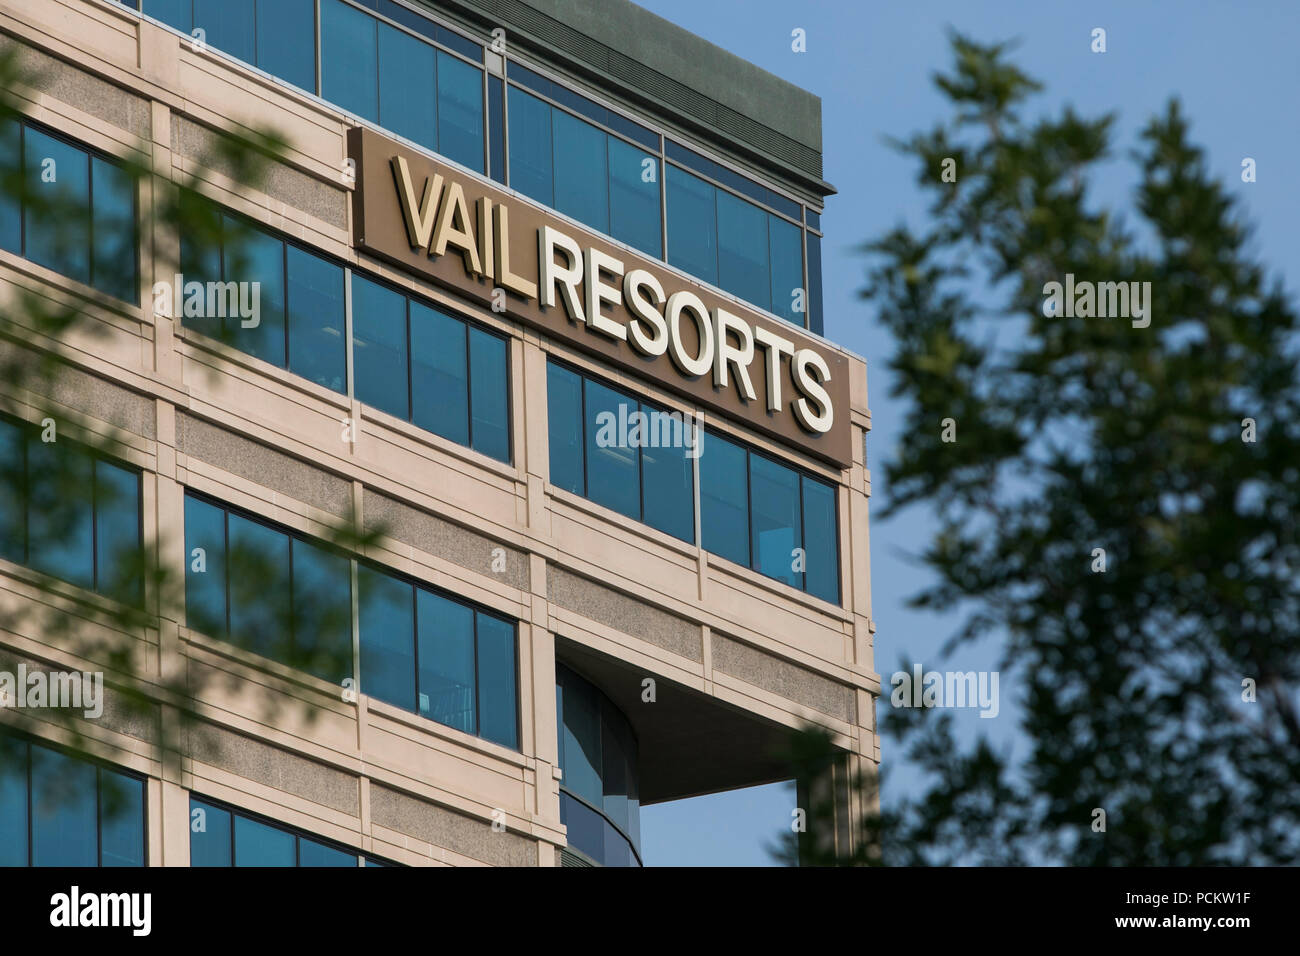 A logo sign outside of the headquarters of Vail Resorts, Inc., in Broomfield, Colorado on July 21, 2018. - Stock Image